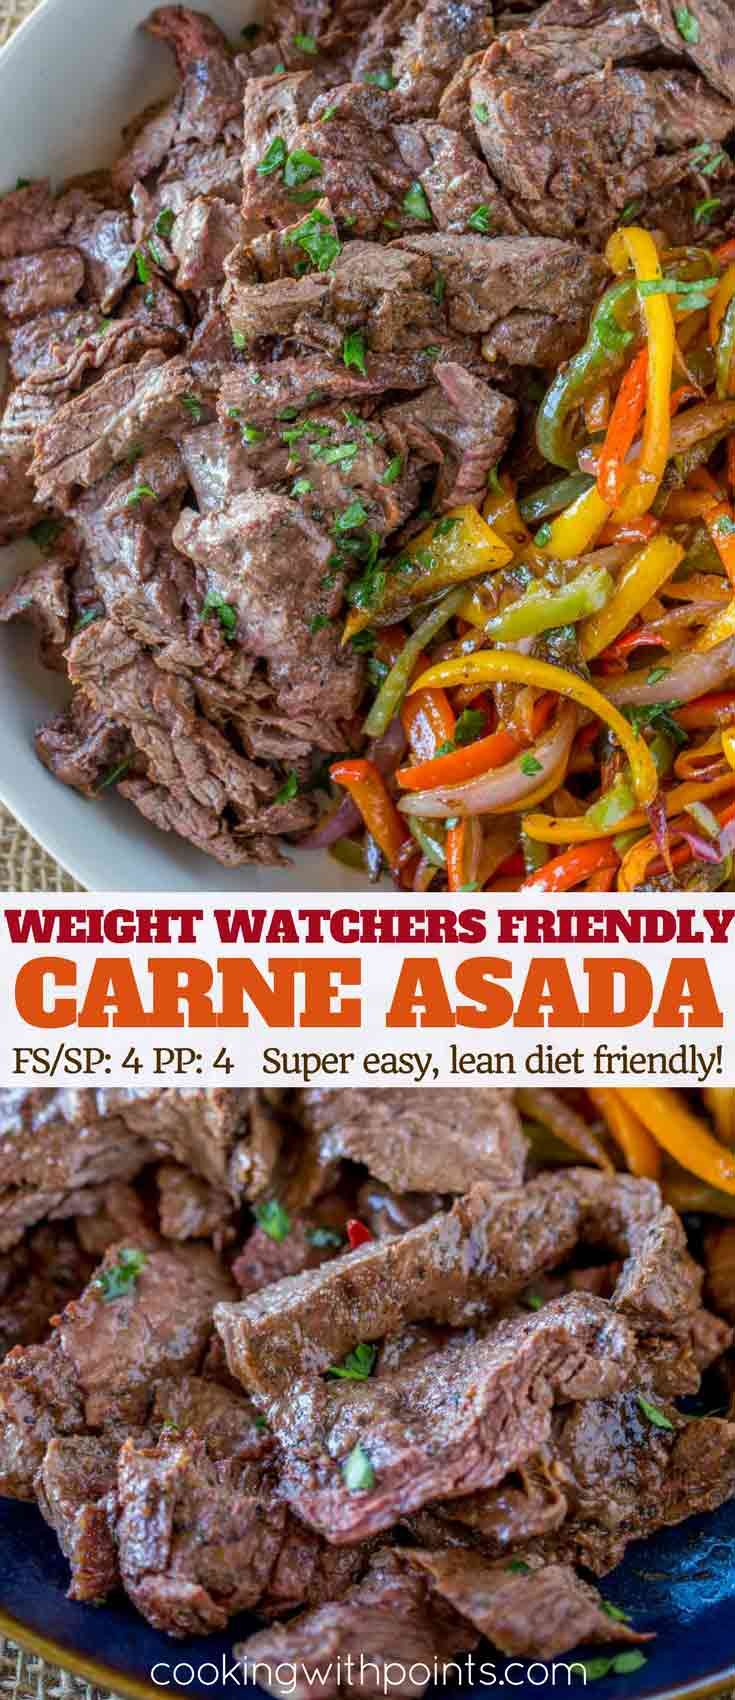 Skinny Carne Asada with lean flap meat is marinaded with a soy vinegar sauce and grilled for a tender, lean Mexican restaurant favorite with just 4 smart points per serving for an easy weight watcher friendly meal.